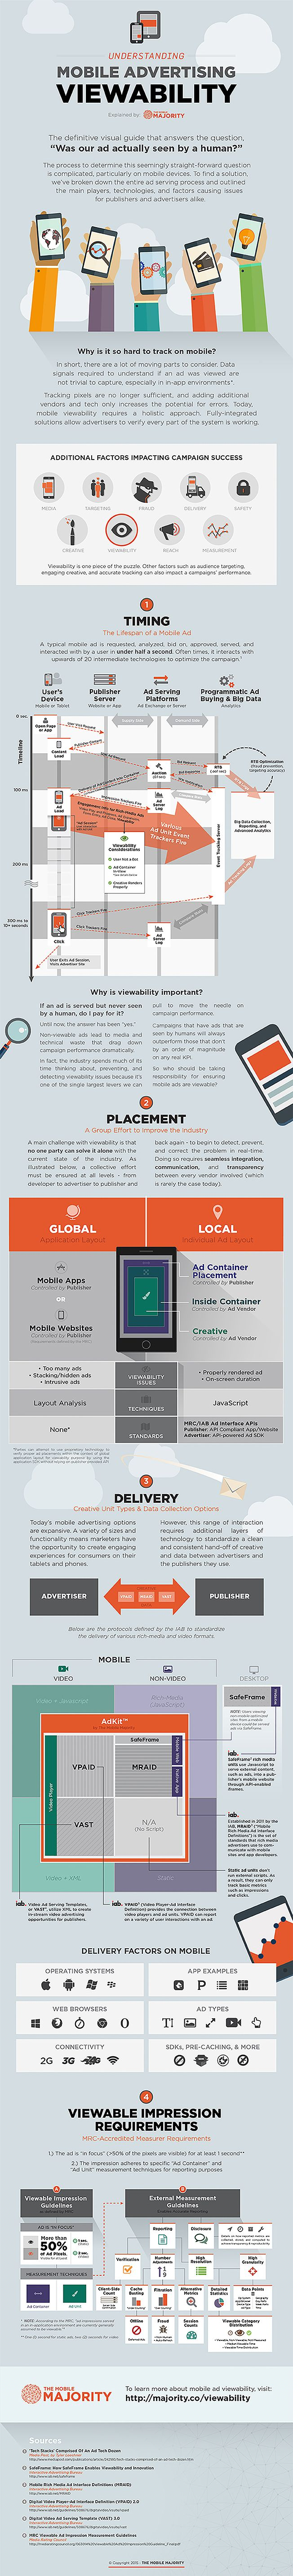 This Infographic Explains Mobile Advertising Viewability   Adweek